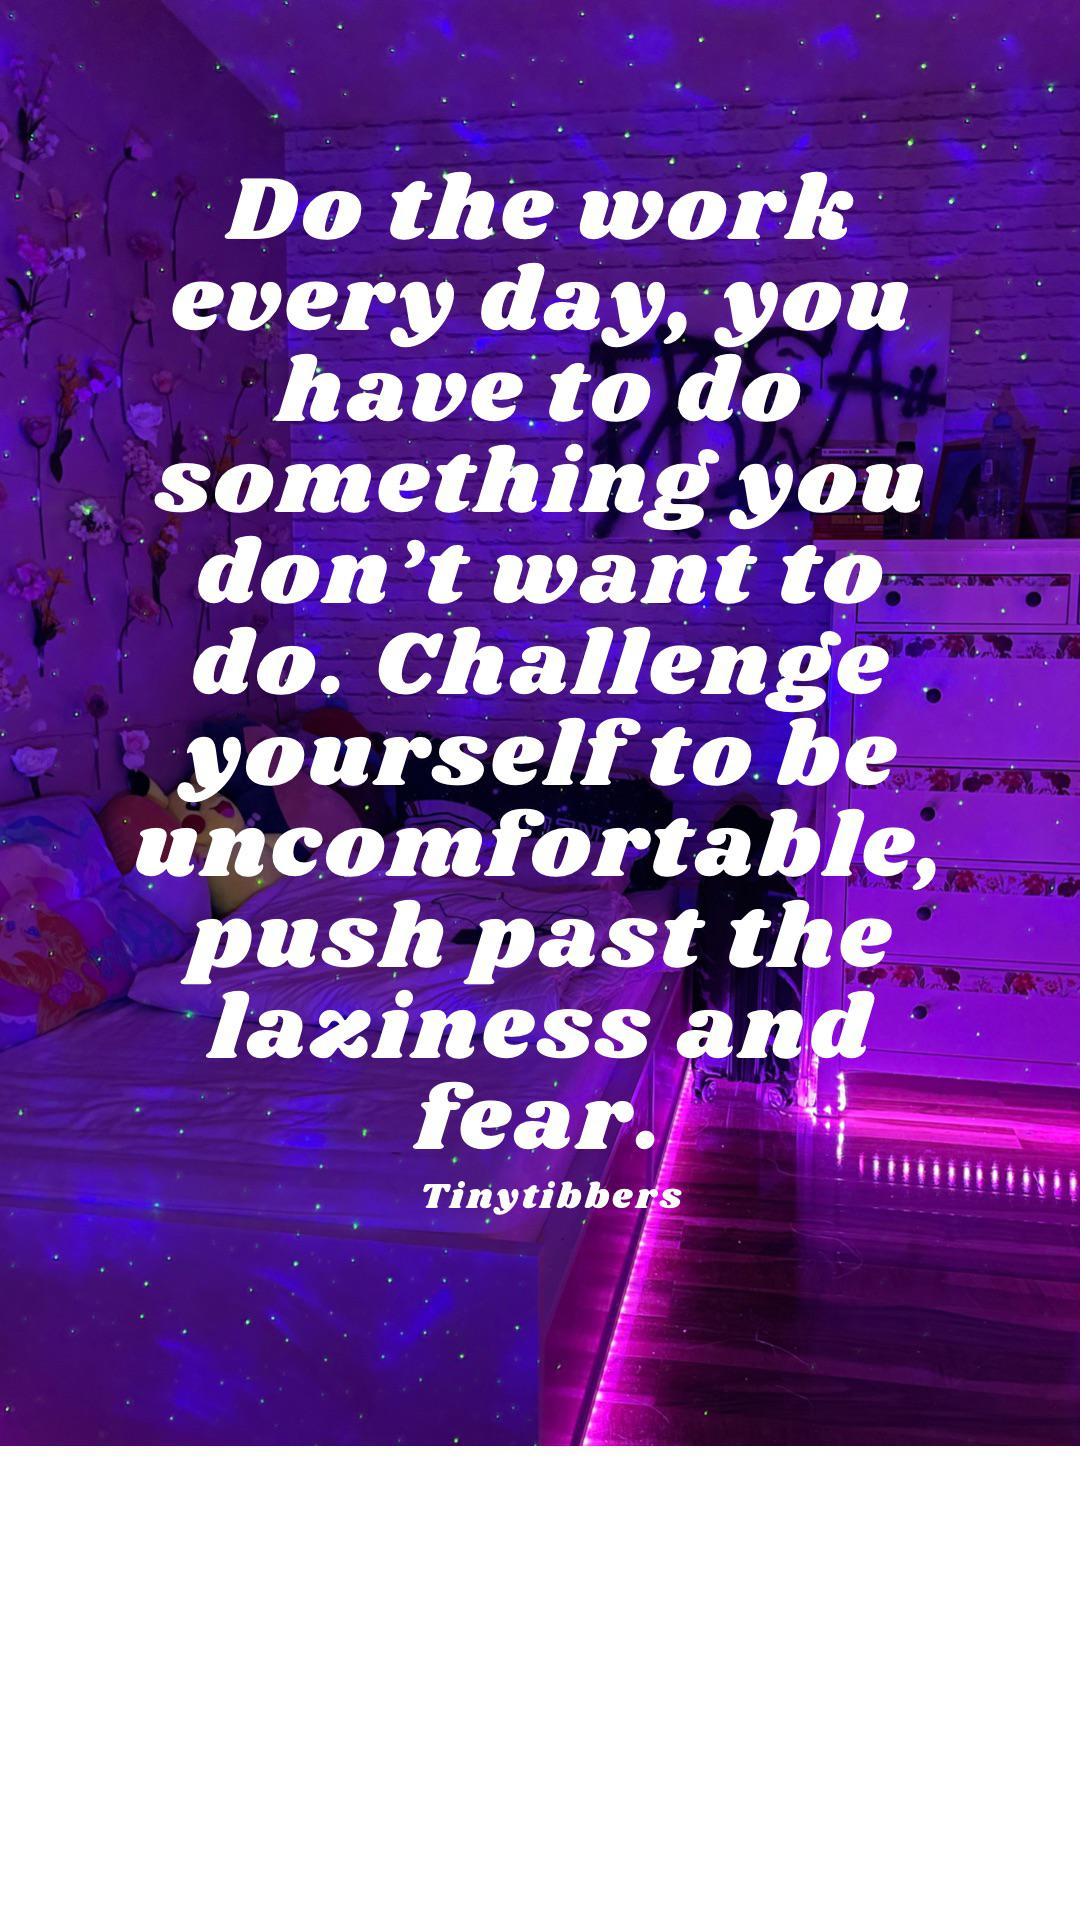 [image] Challenge yourself everyday